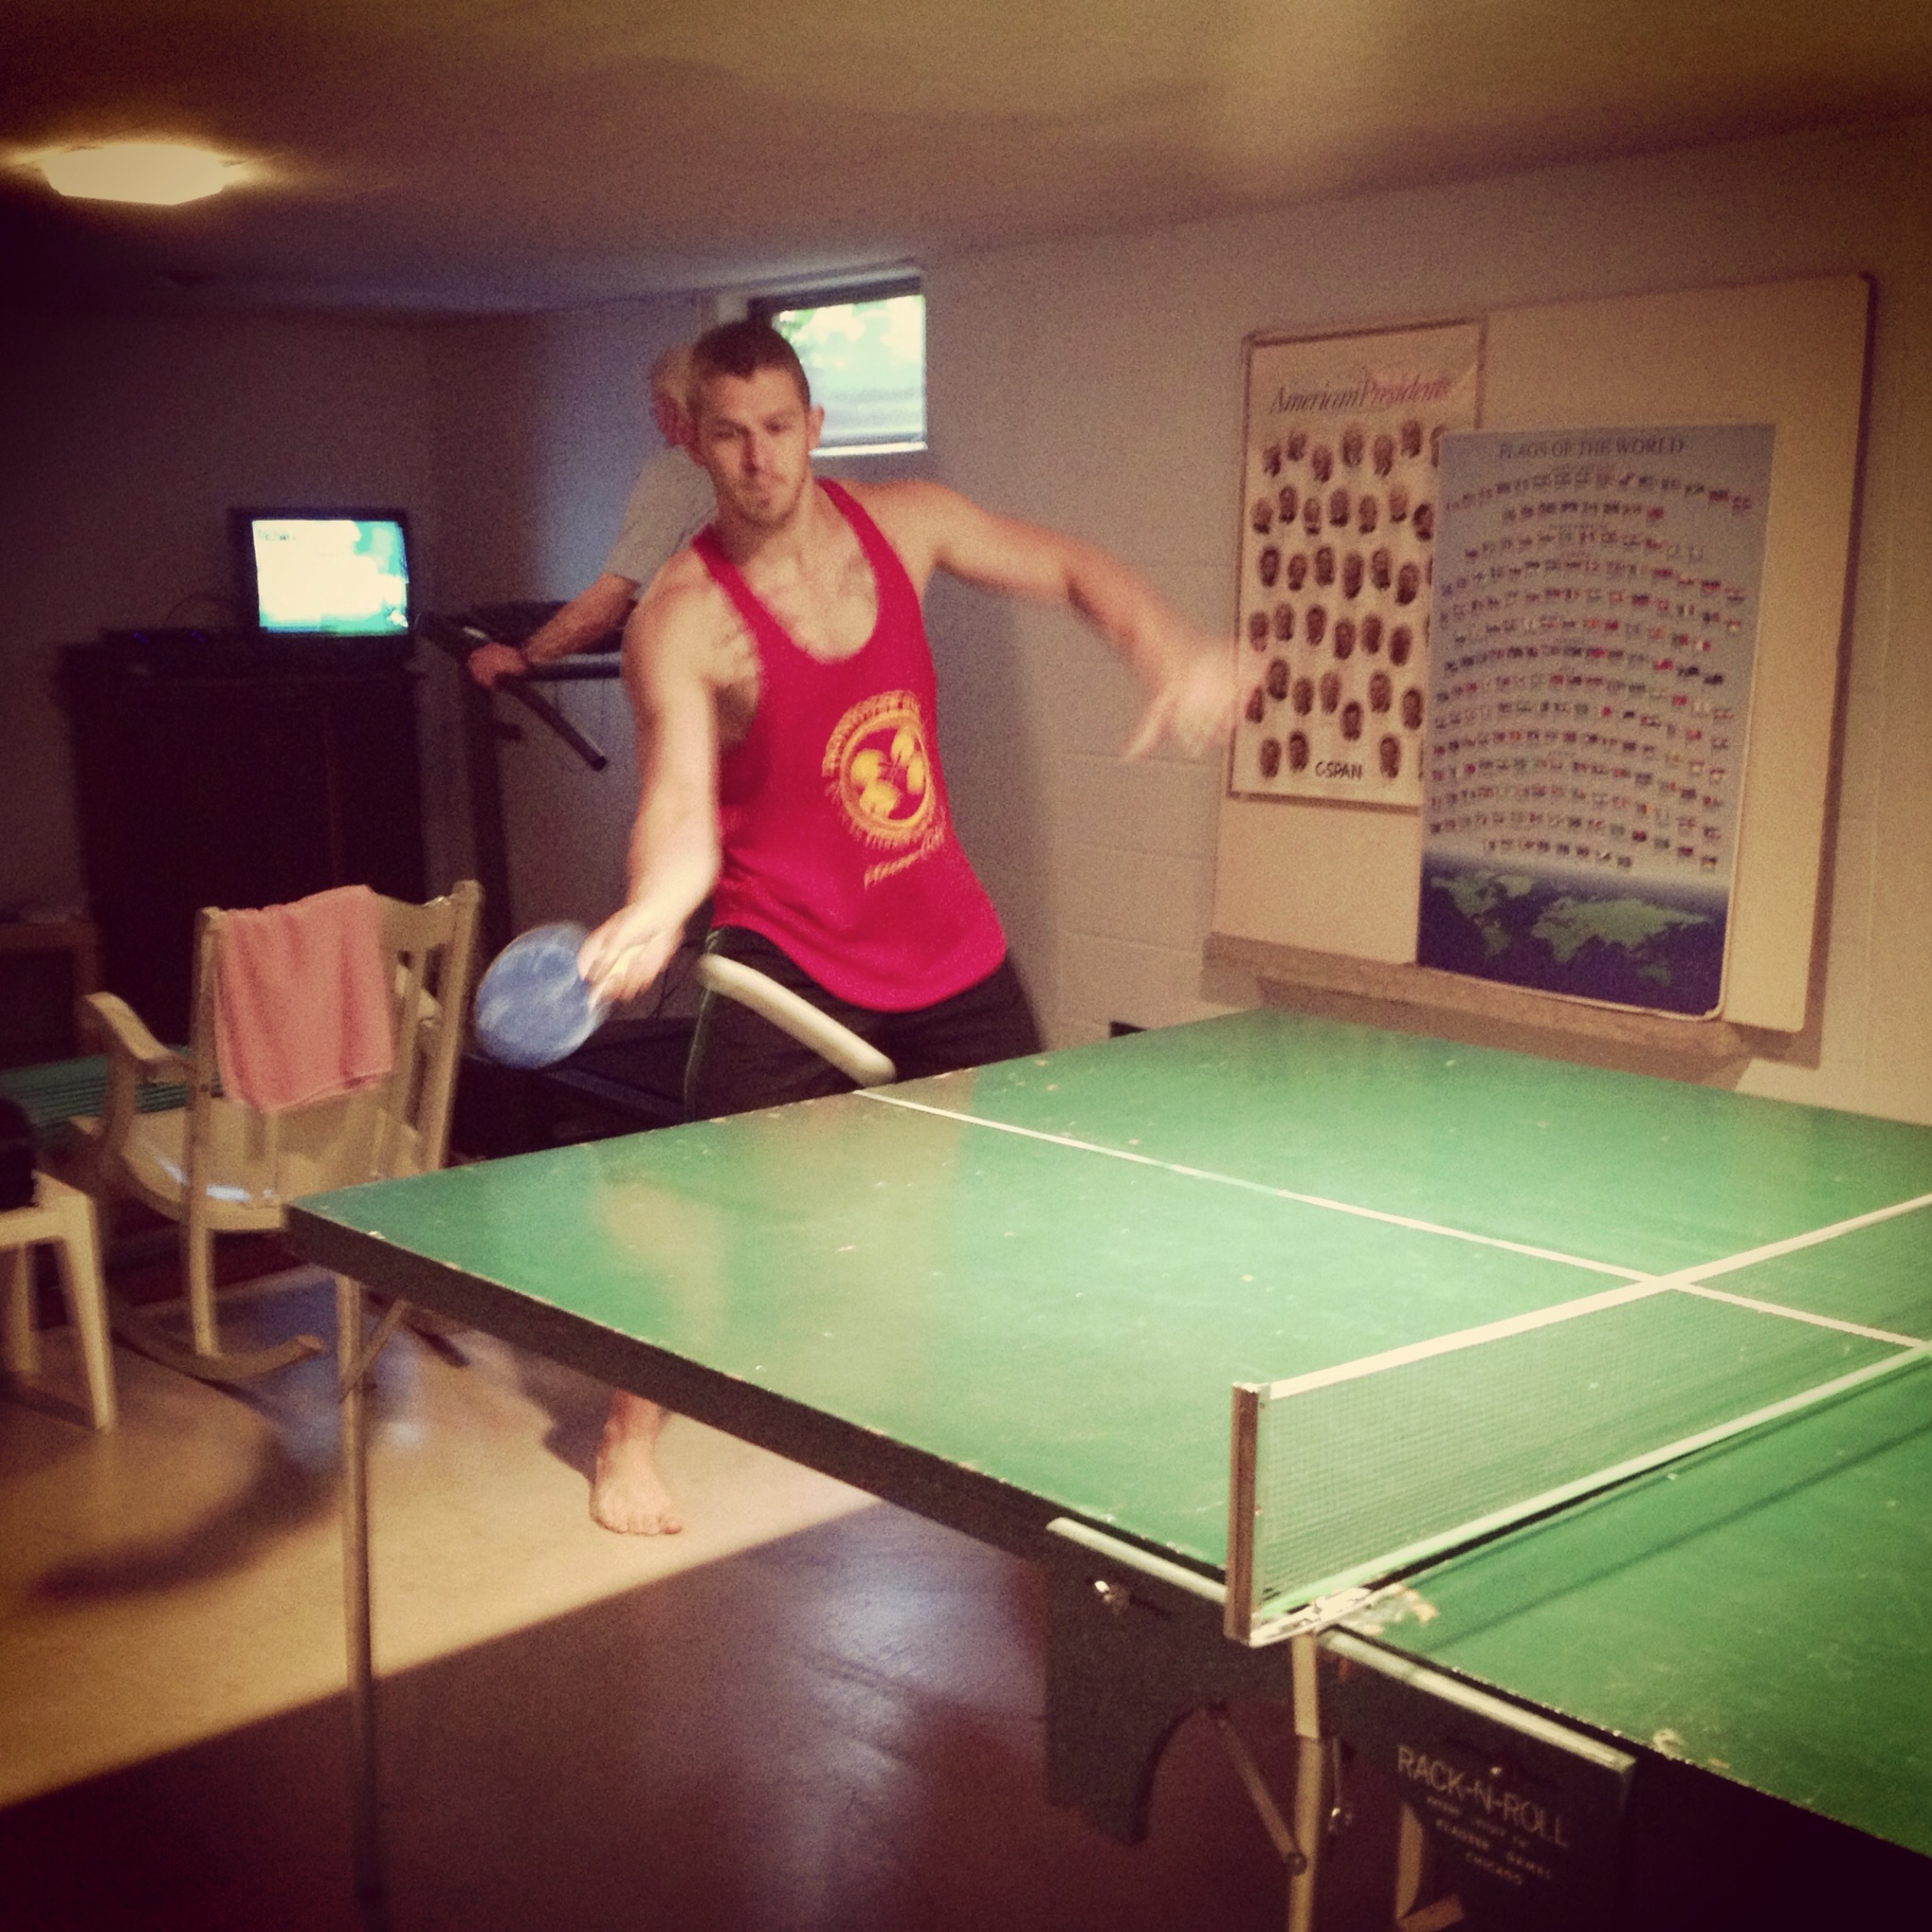 Ping pong all day err day